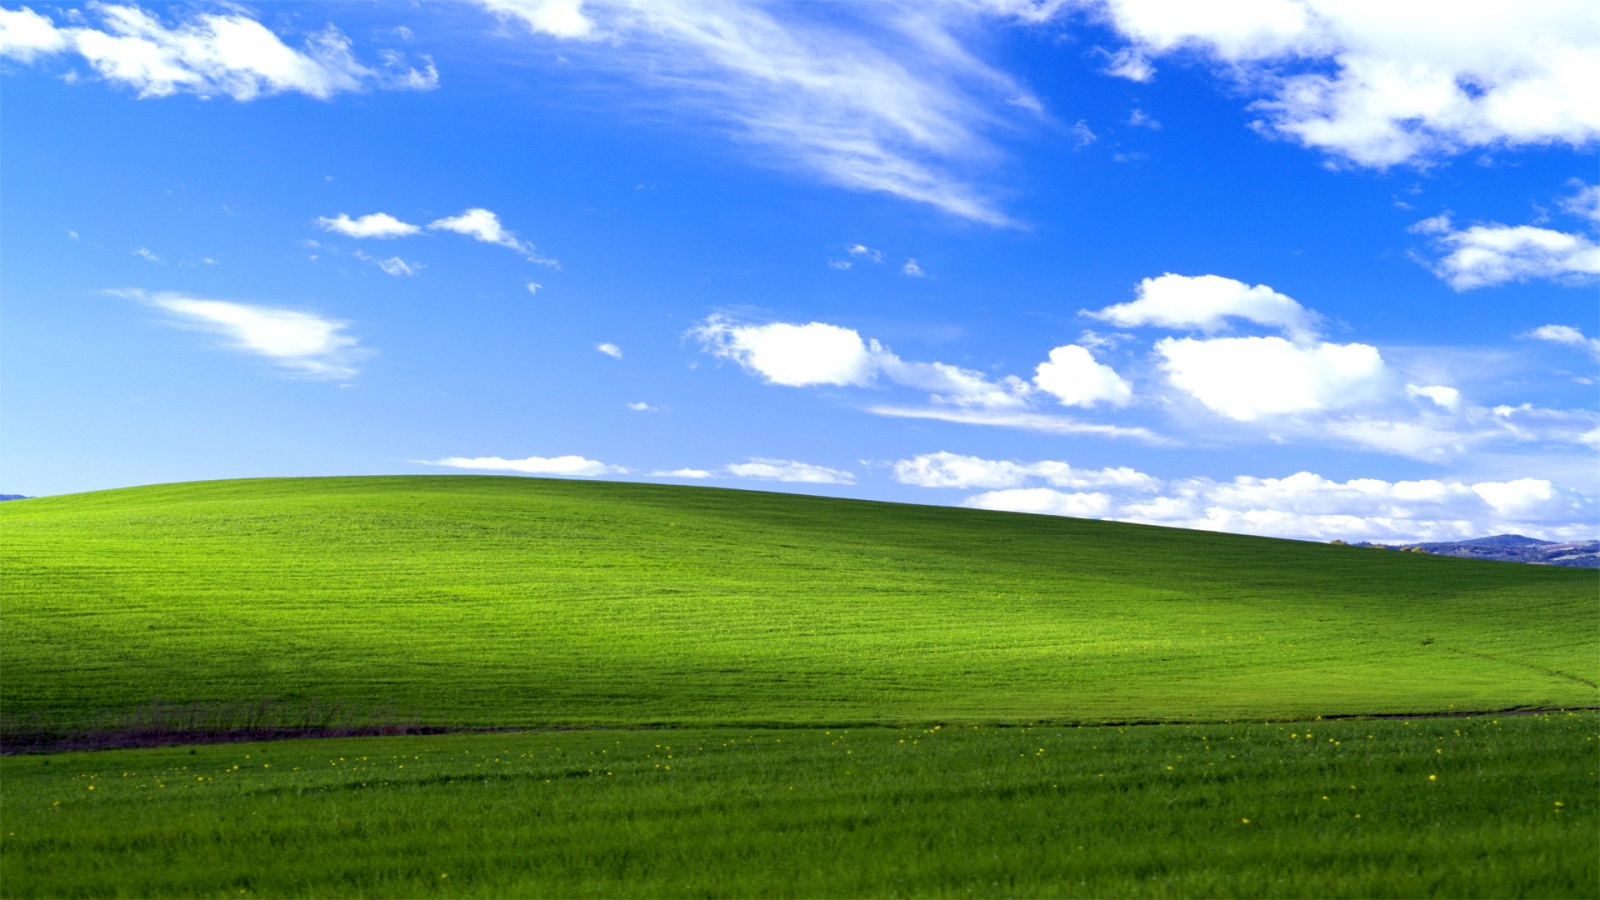 windows_xp_bliss-1600x900.jpg